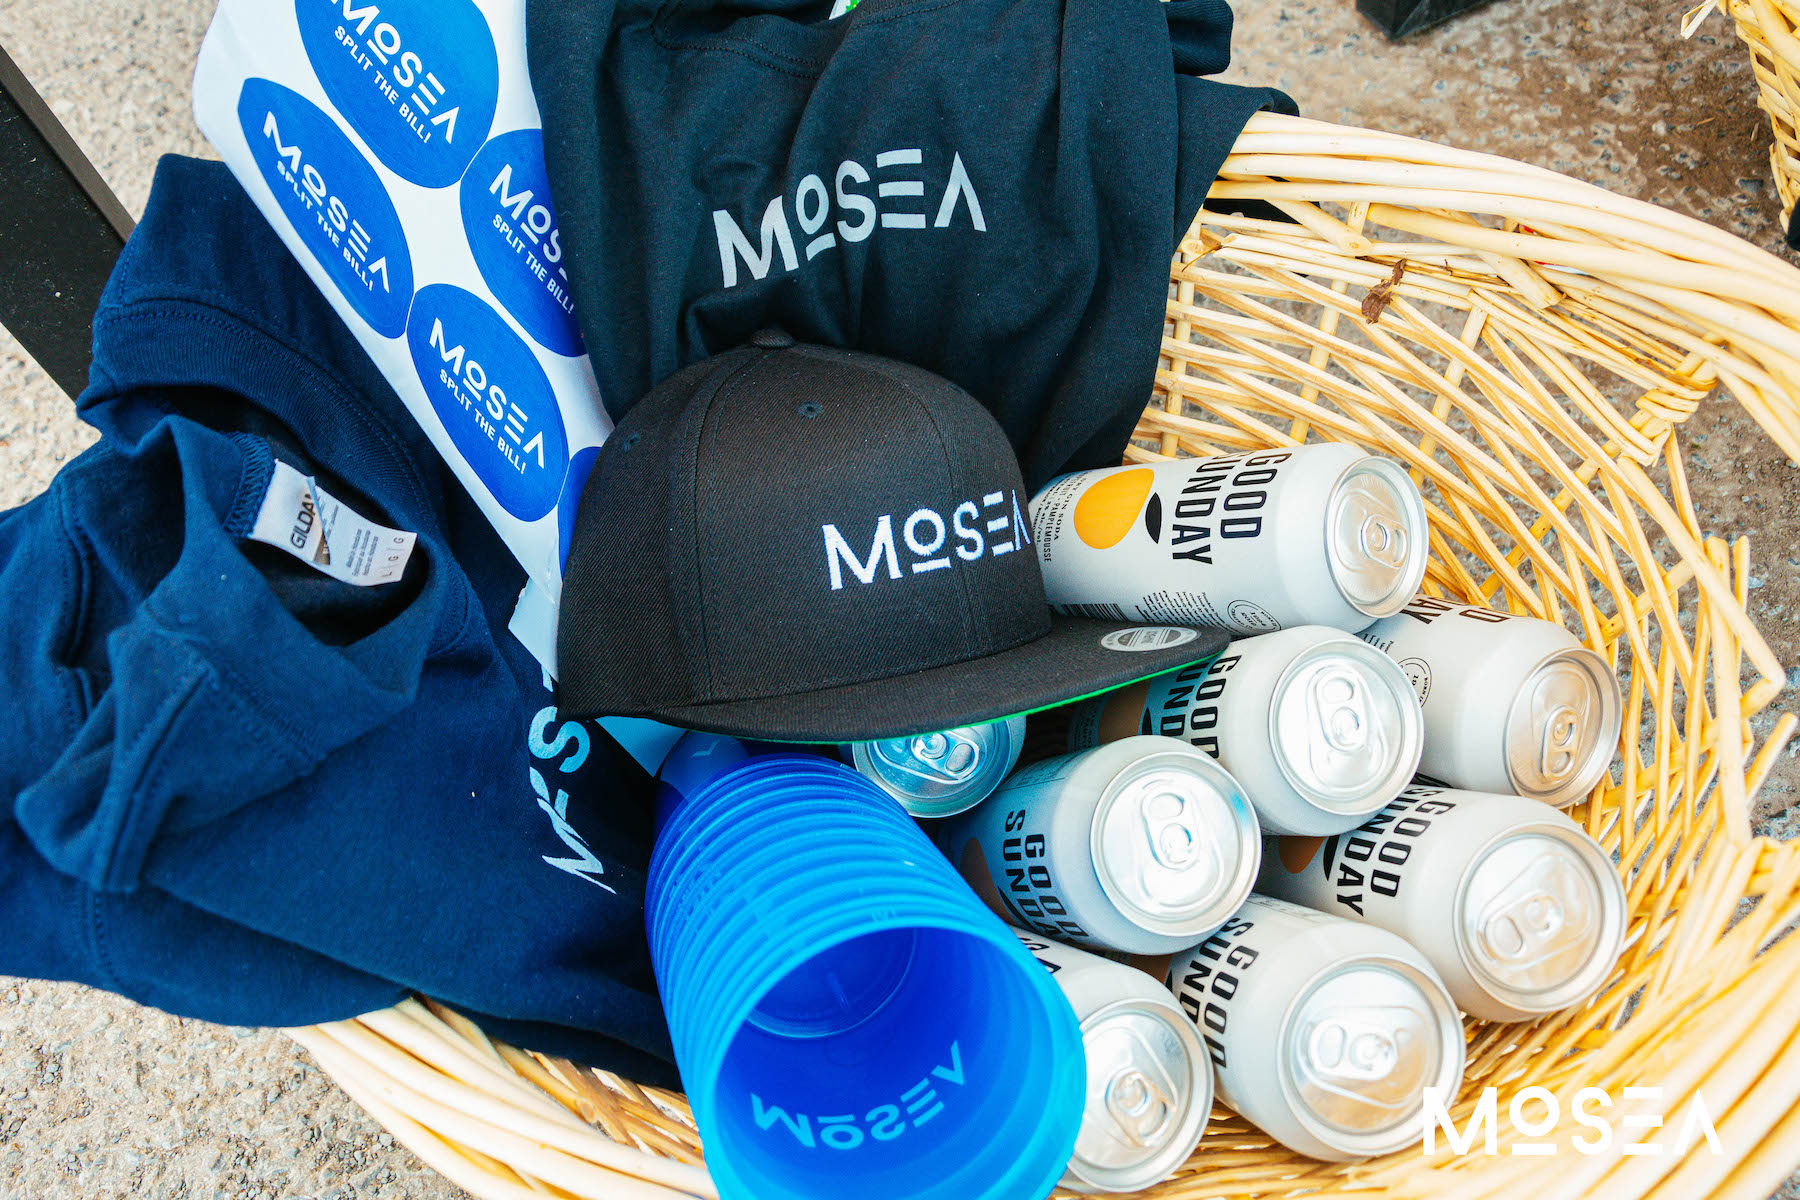 Mosea swag and Good Sunday cans in a basket